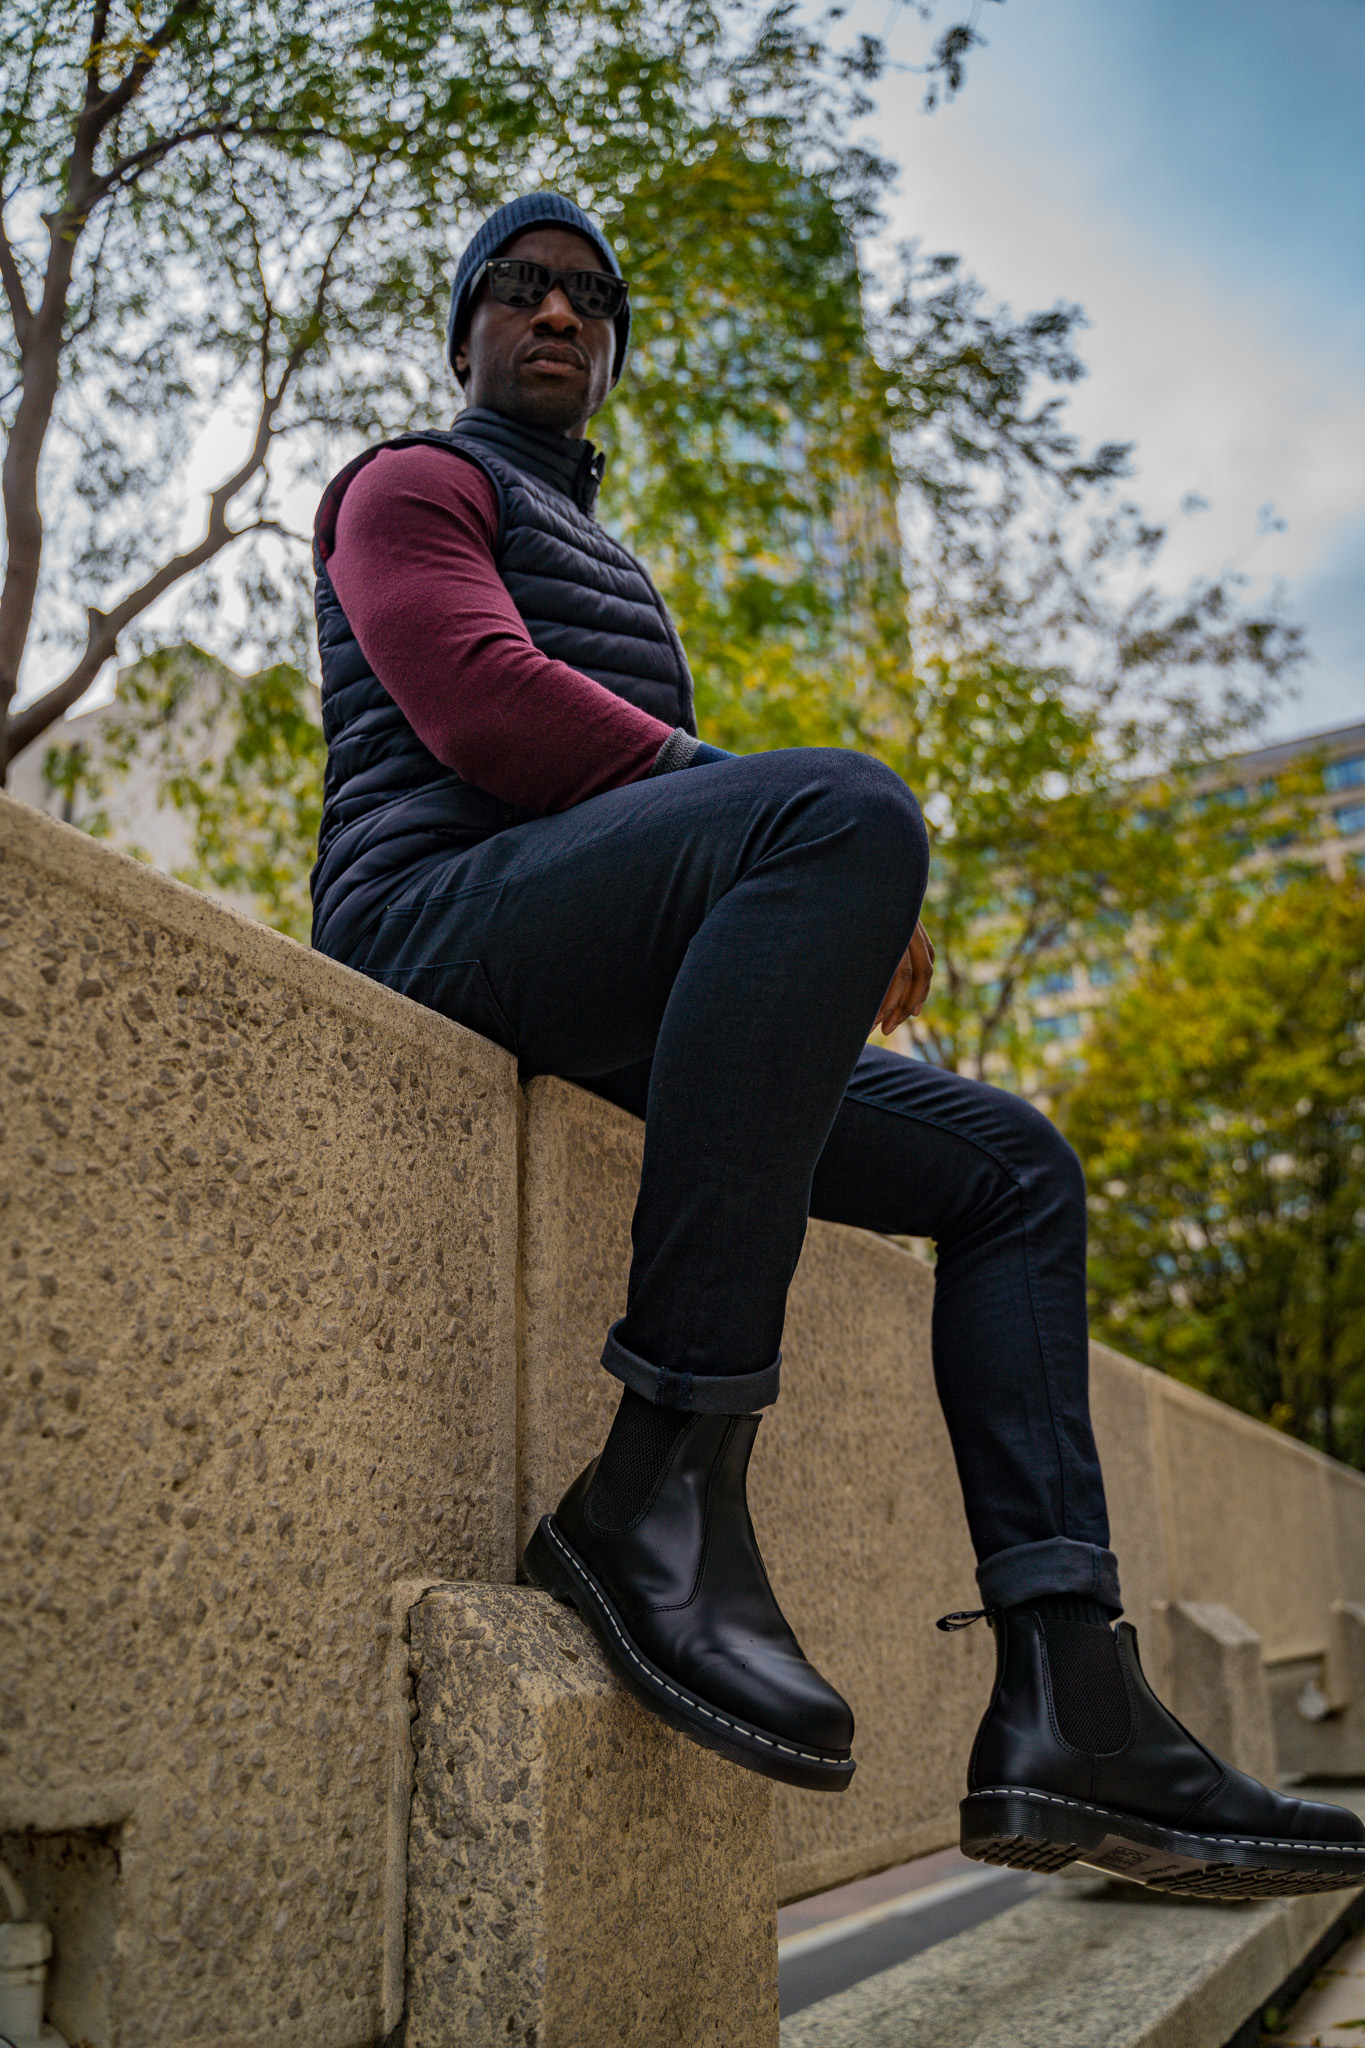 Maketh_the_man-Anton_Welcome-Dr_marten-chelsea_Boots-1